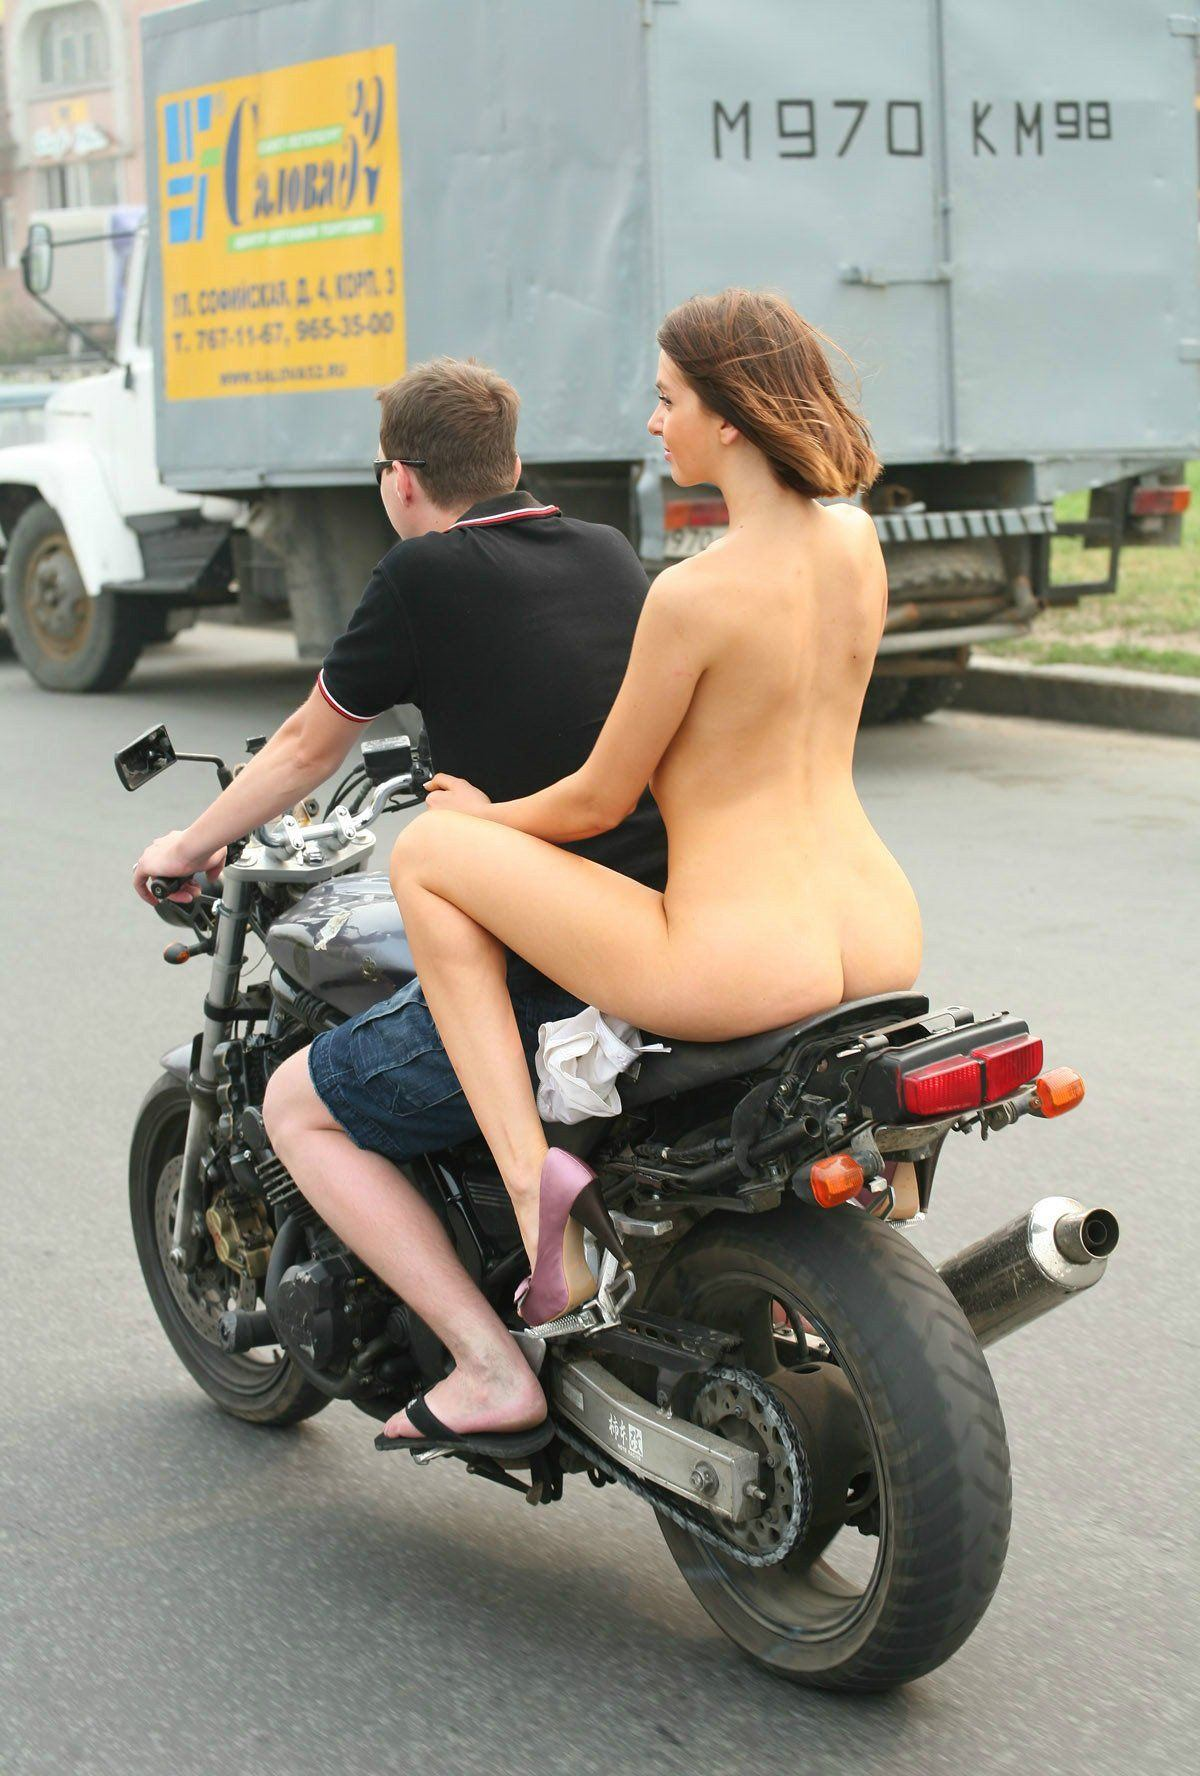 best of Sportbike Nude girl on